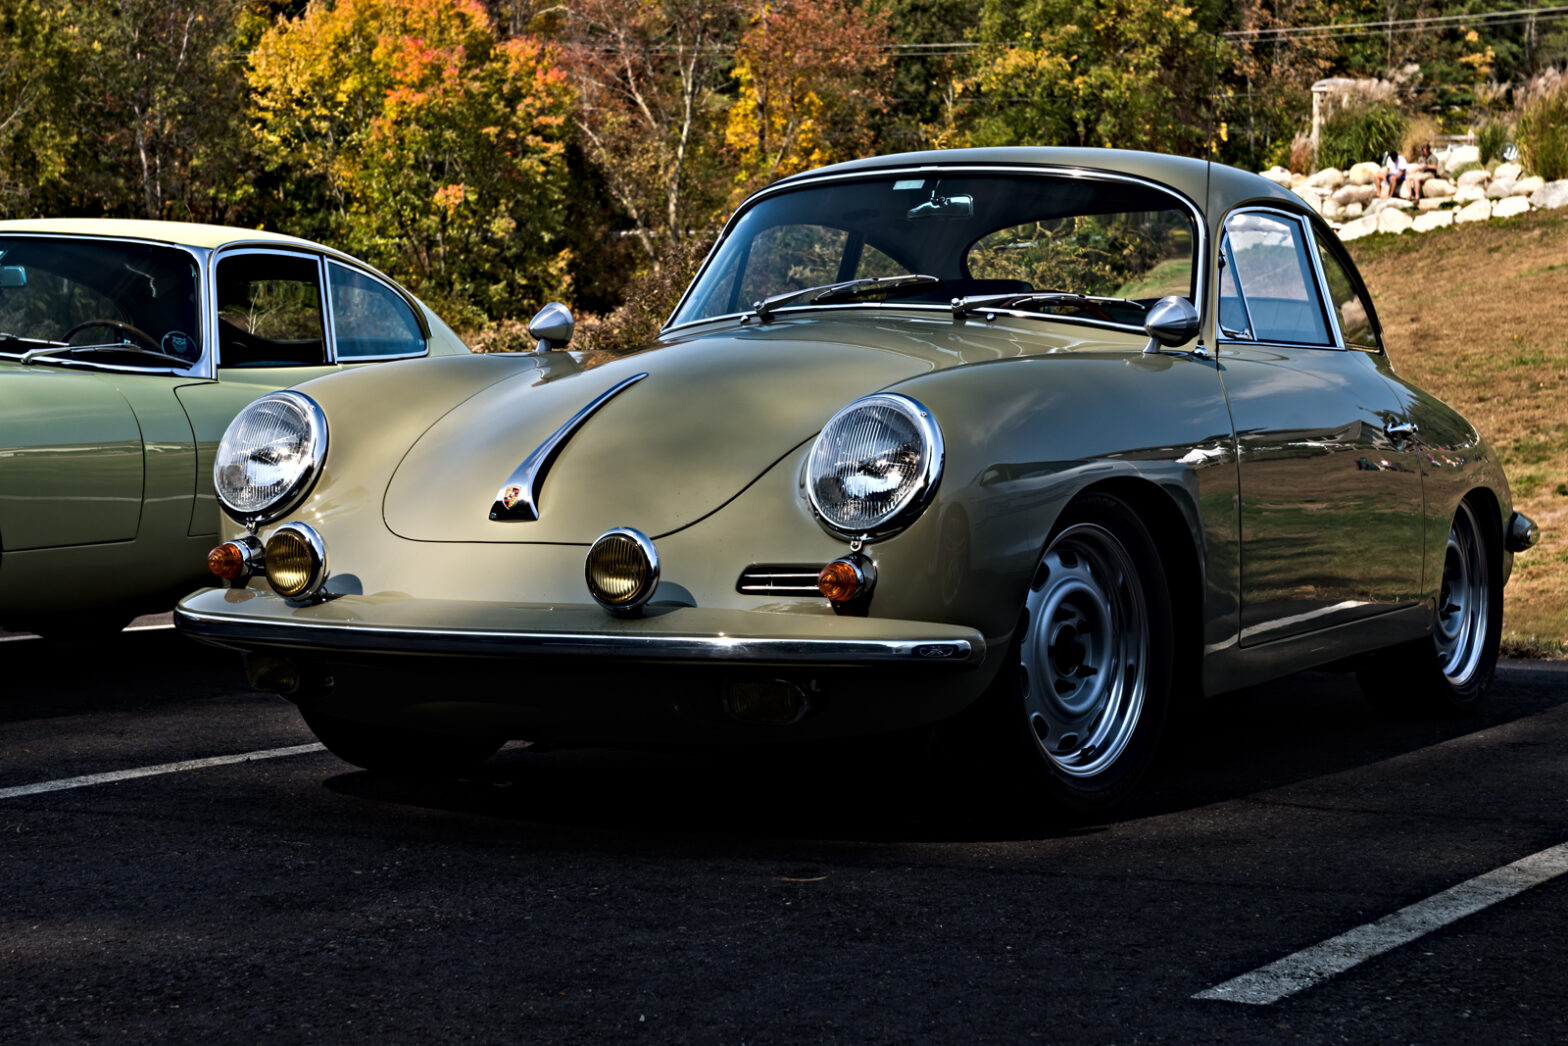 Porsche 356. Larz Anderson Auto Museum Fall 2020 Drive. Labelle Winery, NH